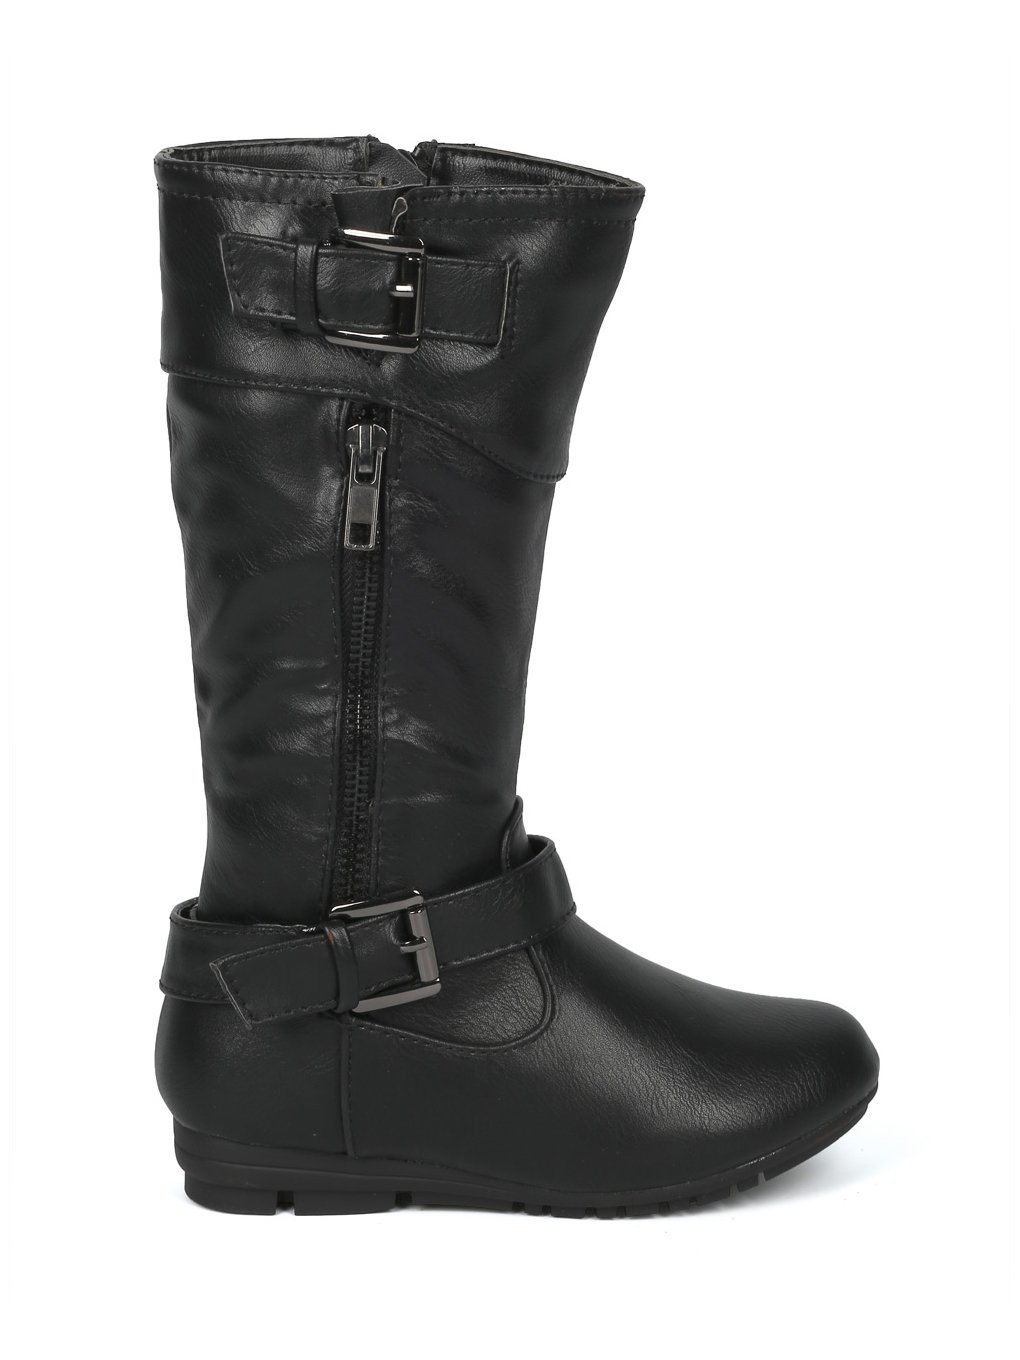 Alrisco Girls Leatherette Buckled Tall Riding Boot HF94 - Black Leatherette (Size: Little Kid 11) by Alrisco (Image #2)